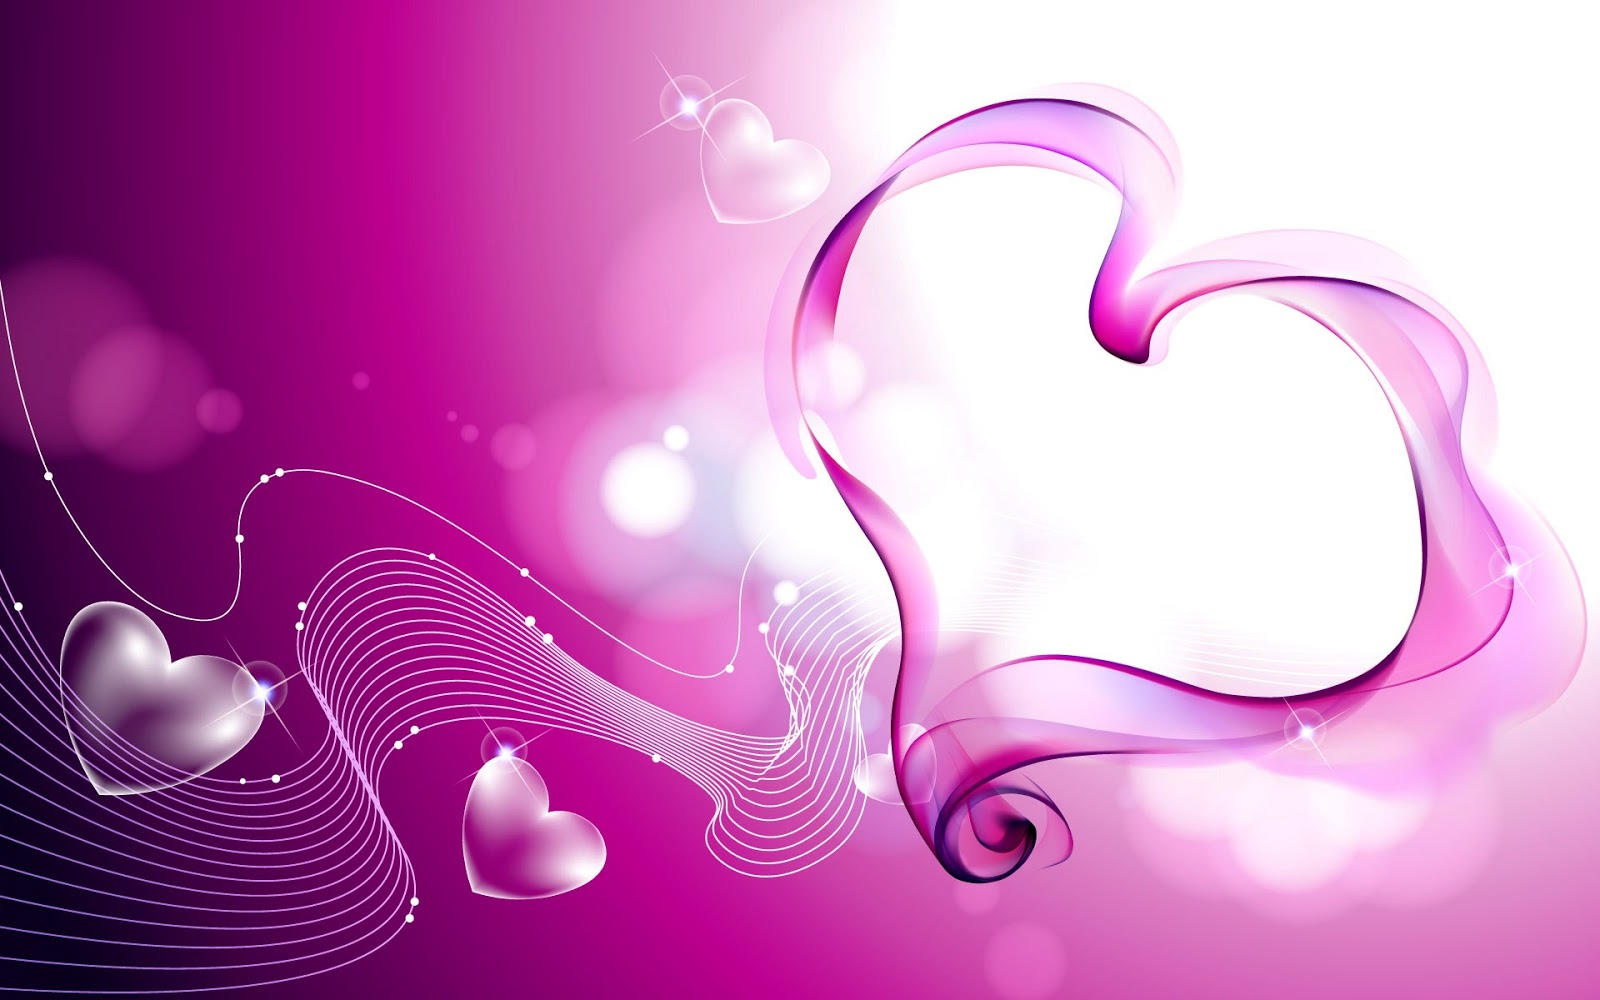 valentines day backgrounds wallpapers - photo #30